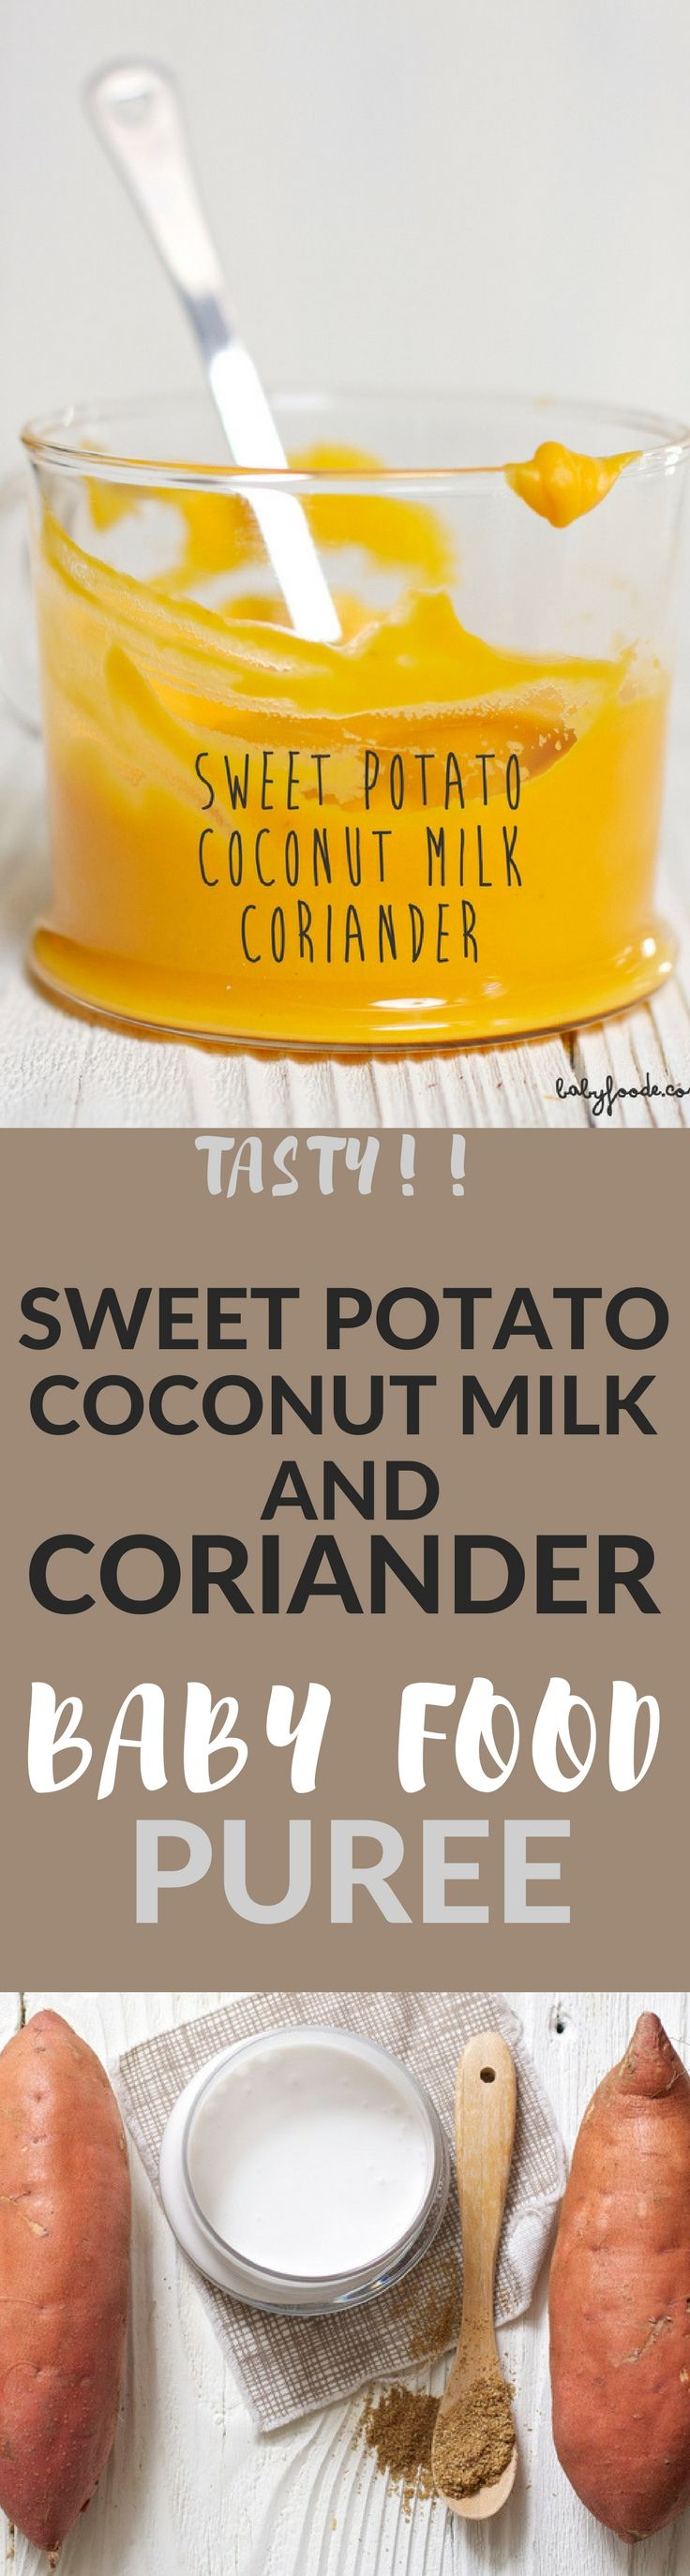 A tasty first puree for baby filled with roasted sweet potatoes, coconut milk and coriander!